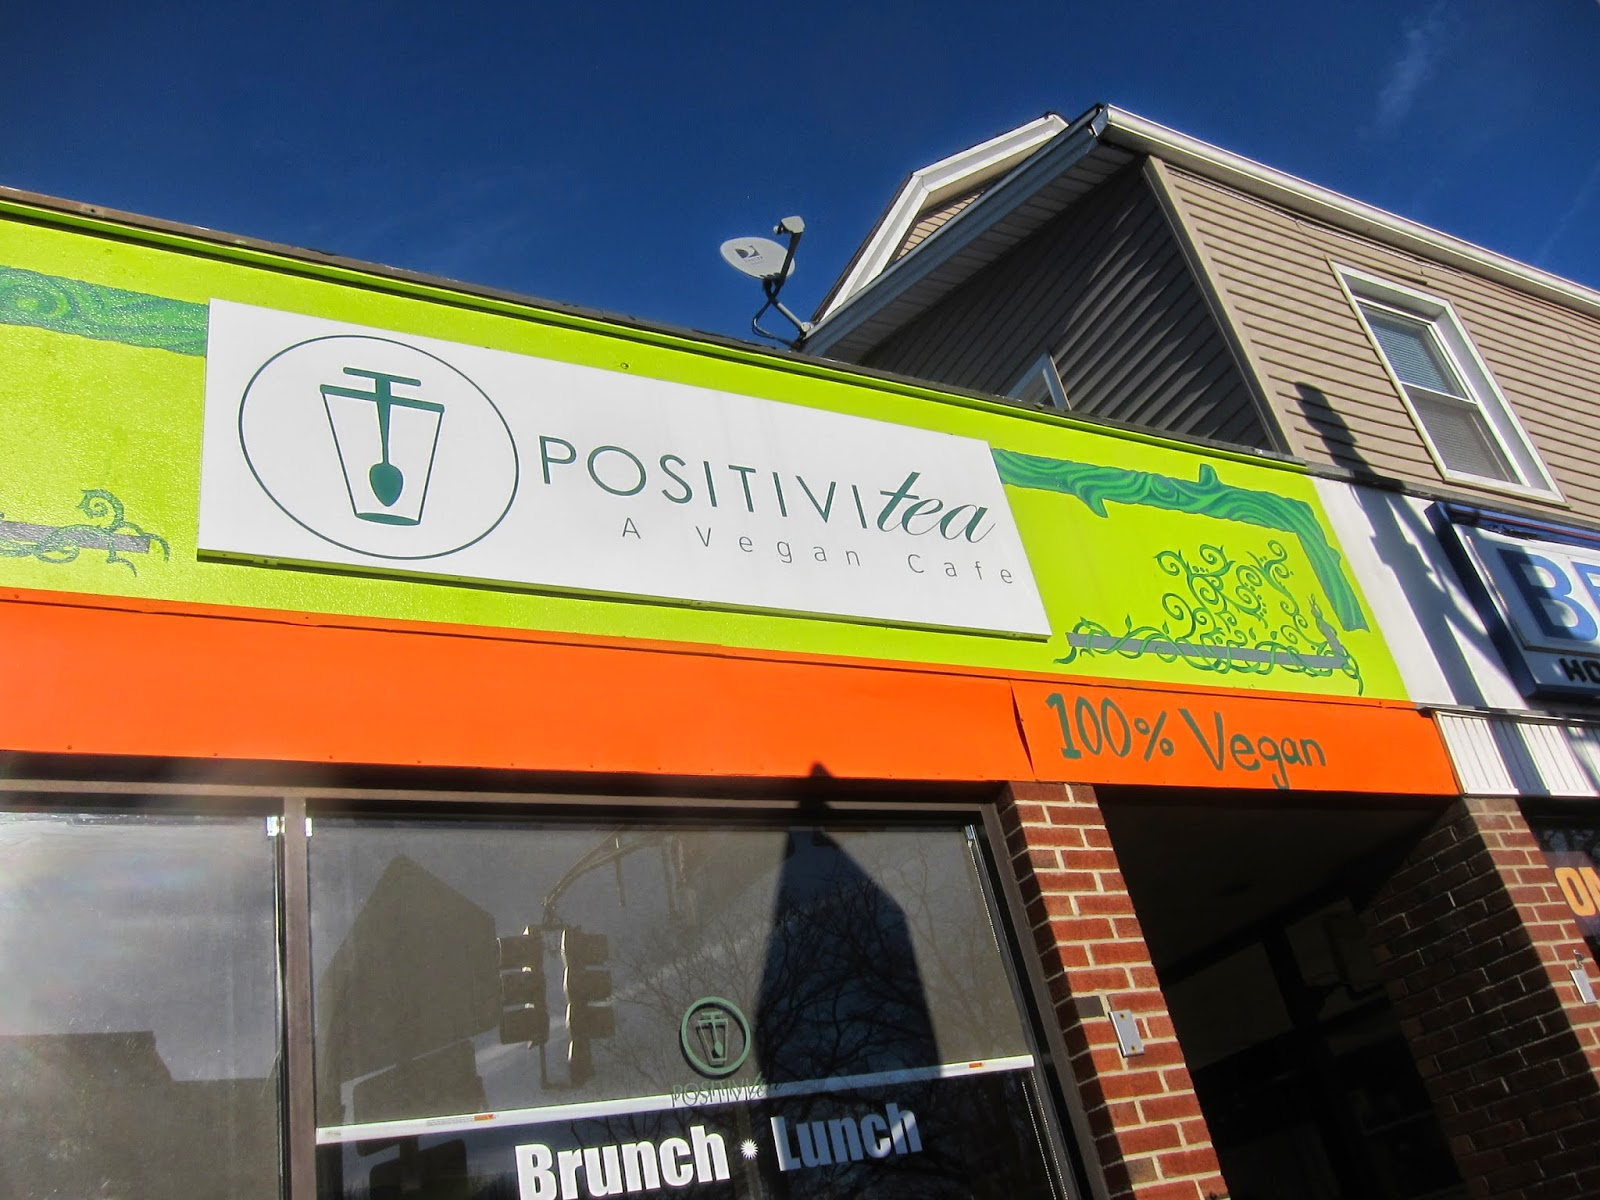 I Recently Traveled To New Jersey Check Out 2 All Vegan Restaurants With My Friend The First Was Positivitea Which Is In Verona Nj